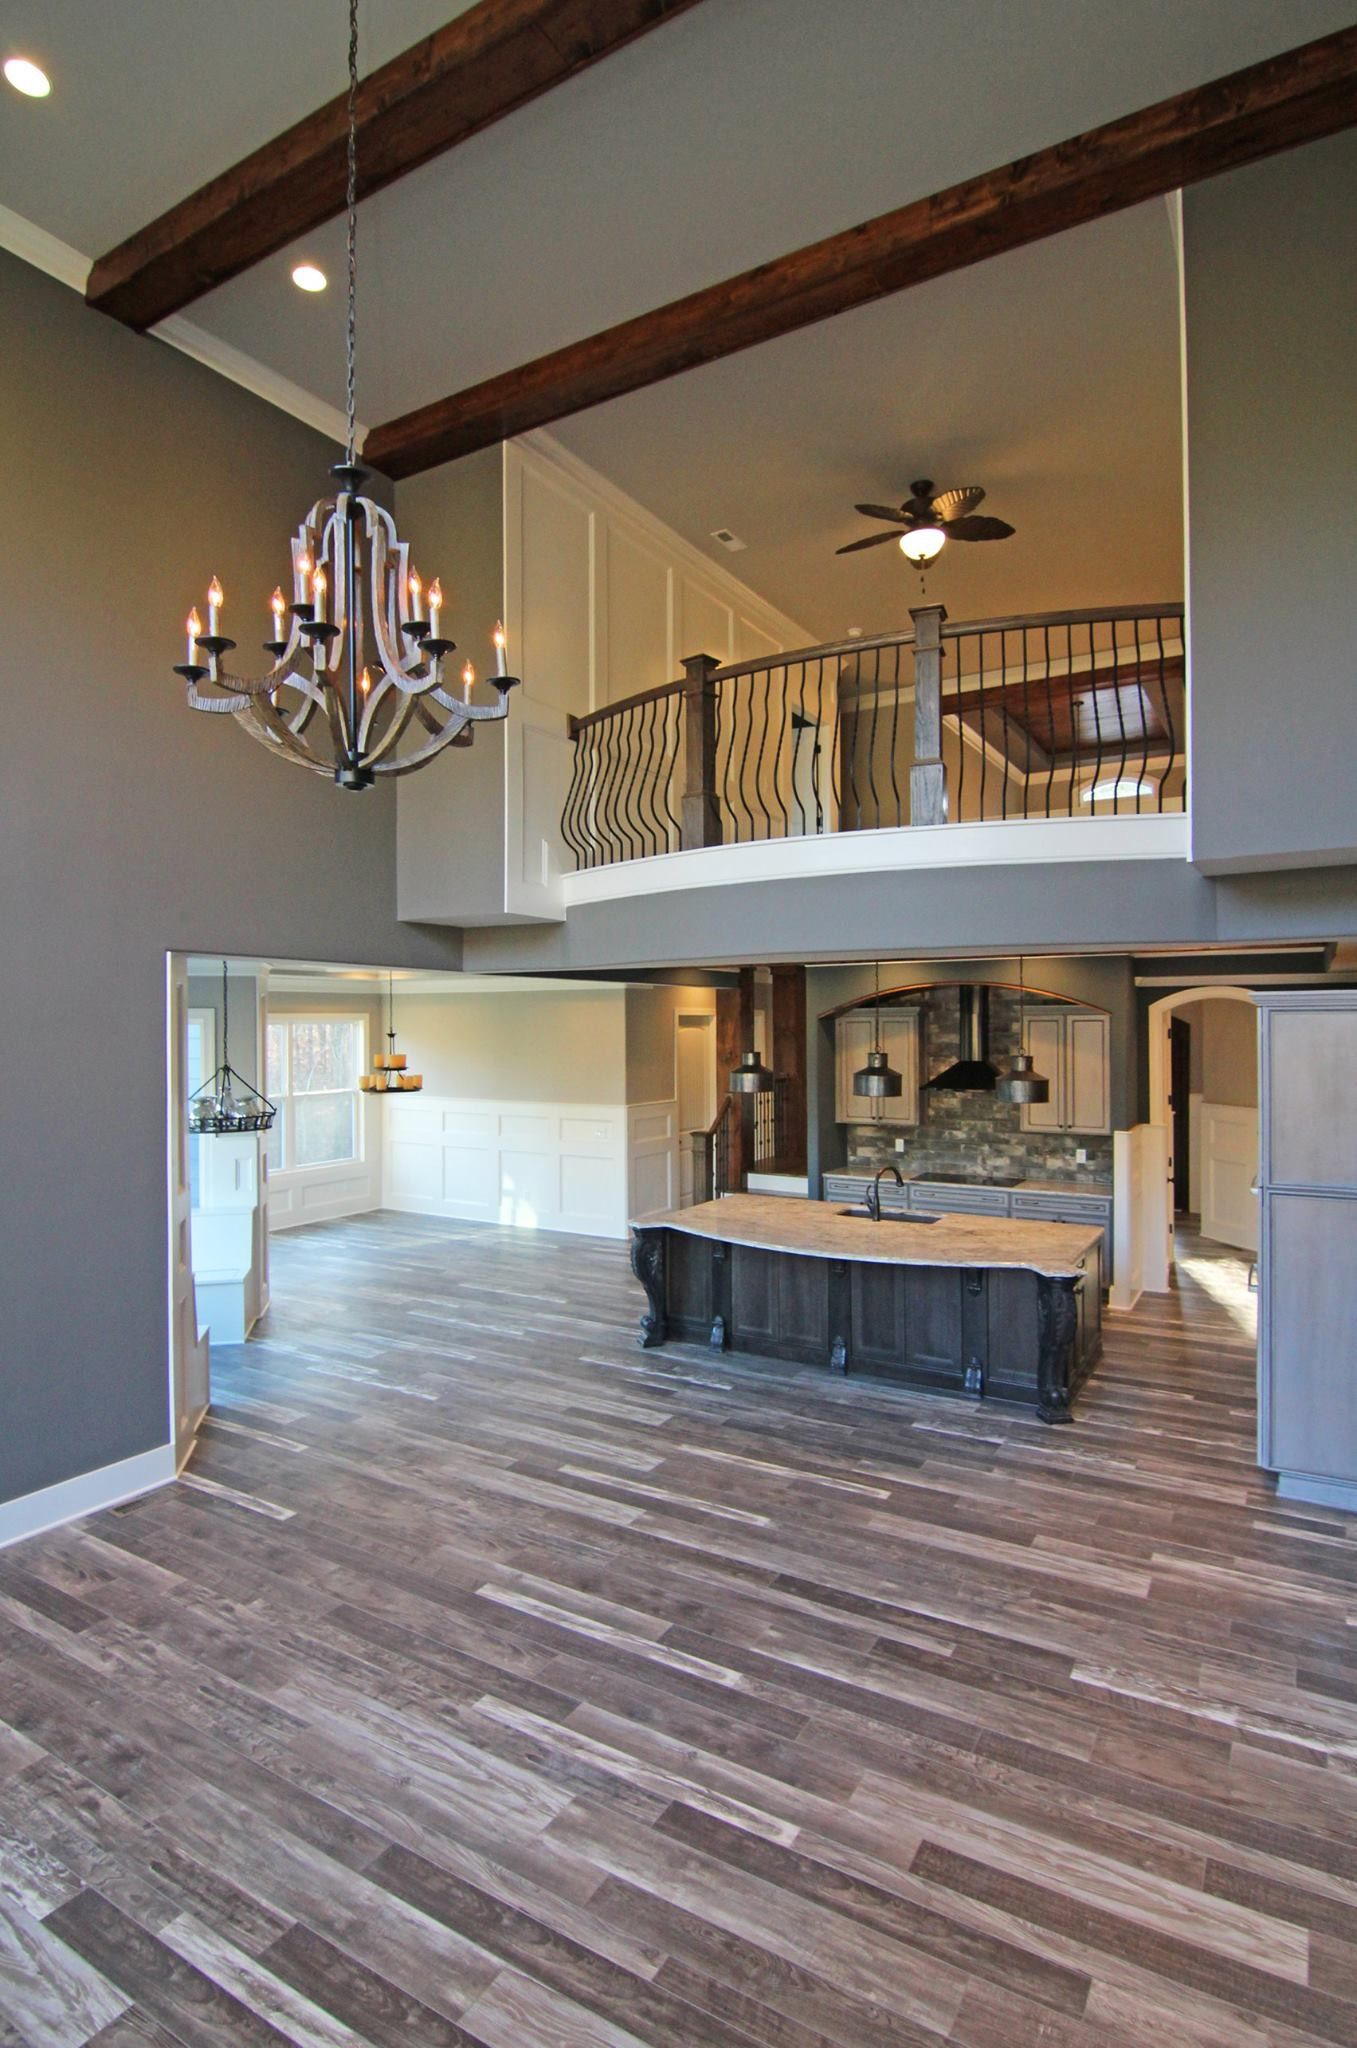 Create The Design Of Your Barndominium Lofts Or Let Barndominiumfloorplans Provide Models For You You Can Have A Ch Barn House Interior House Barn House Plans